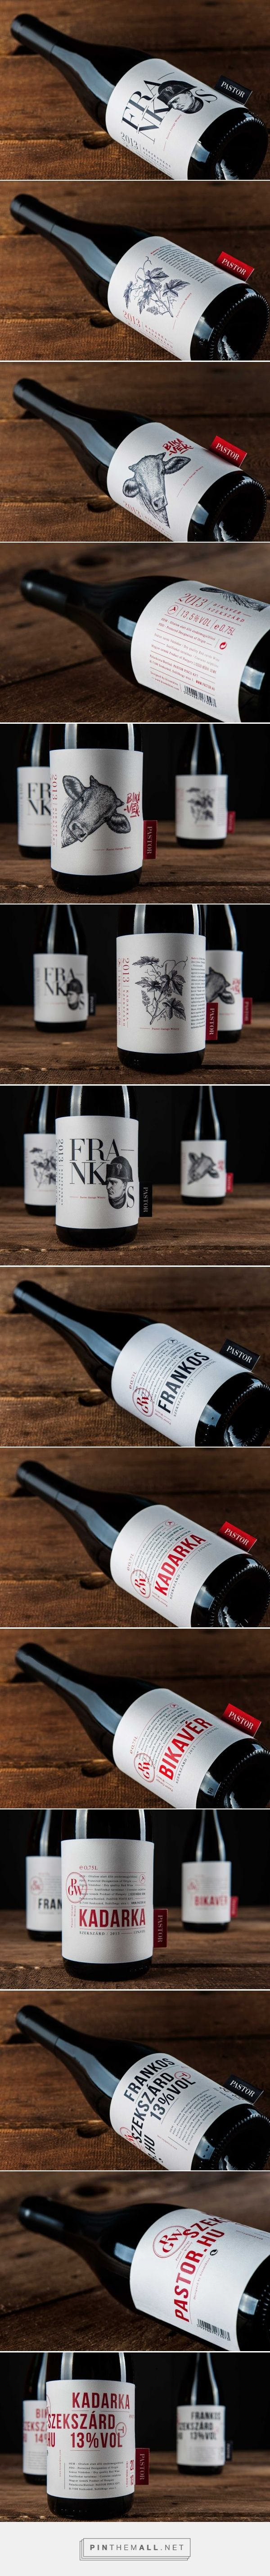 Pastor Winery's Red Wines - Packaging of the World - Creative Package Design Gallery - http://www.packagingoftheworld.com/2016/05/pastor-winerys-red-wines.html #taninotanino